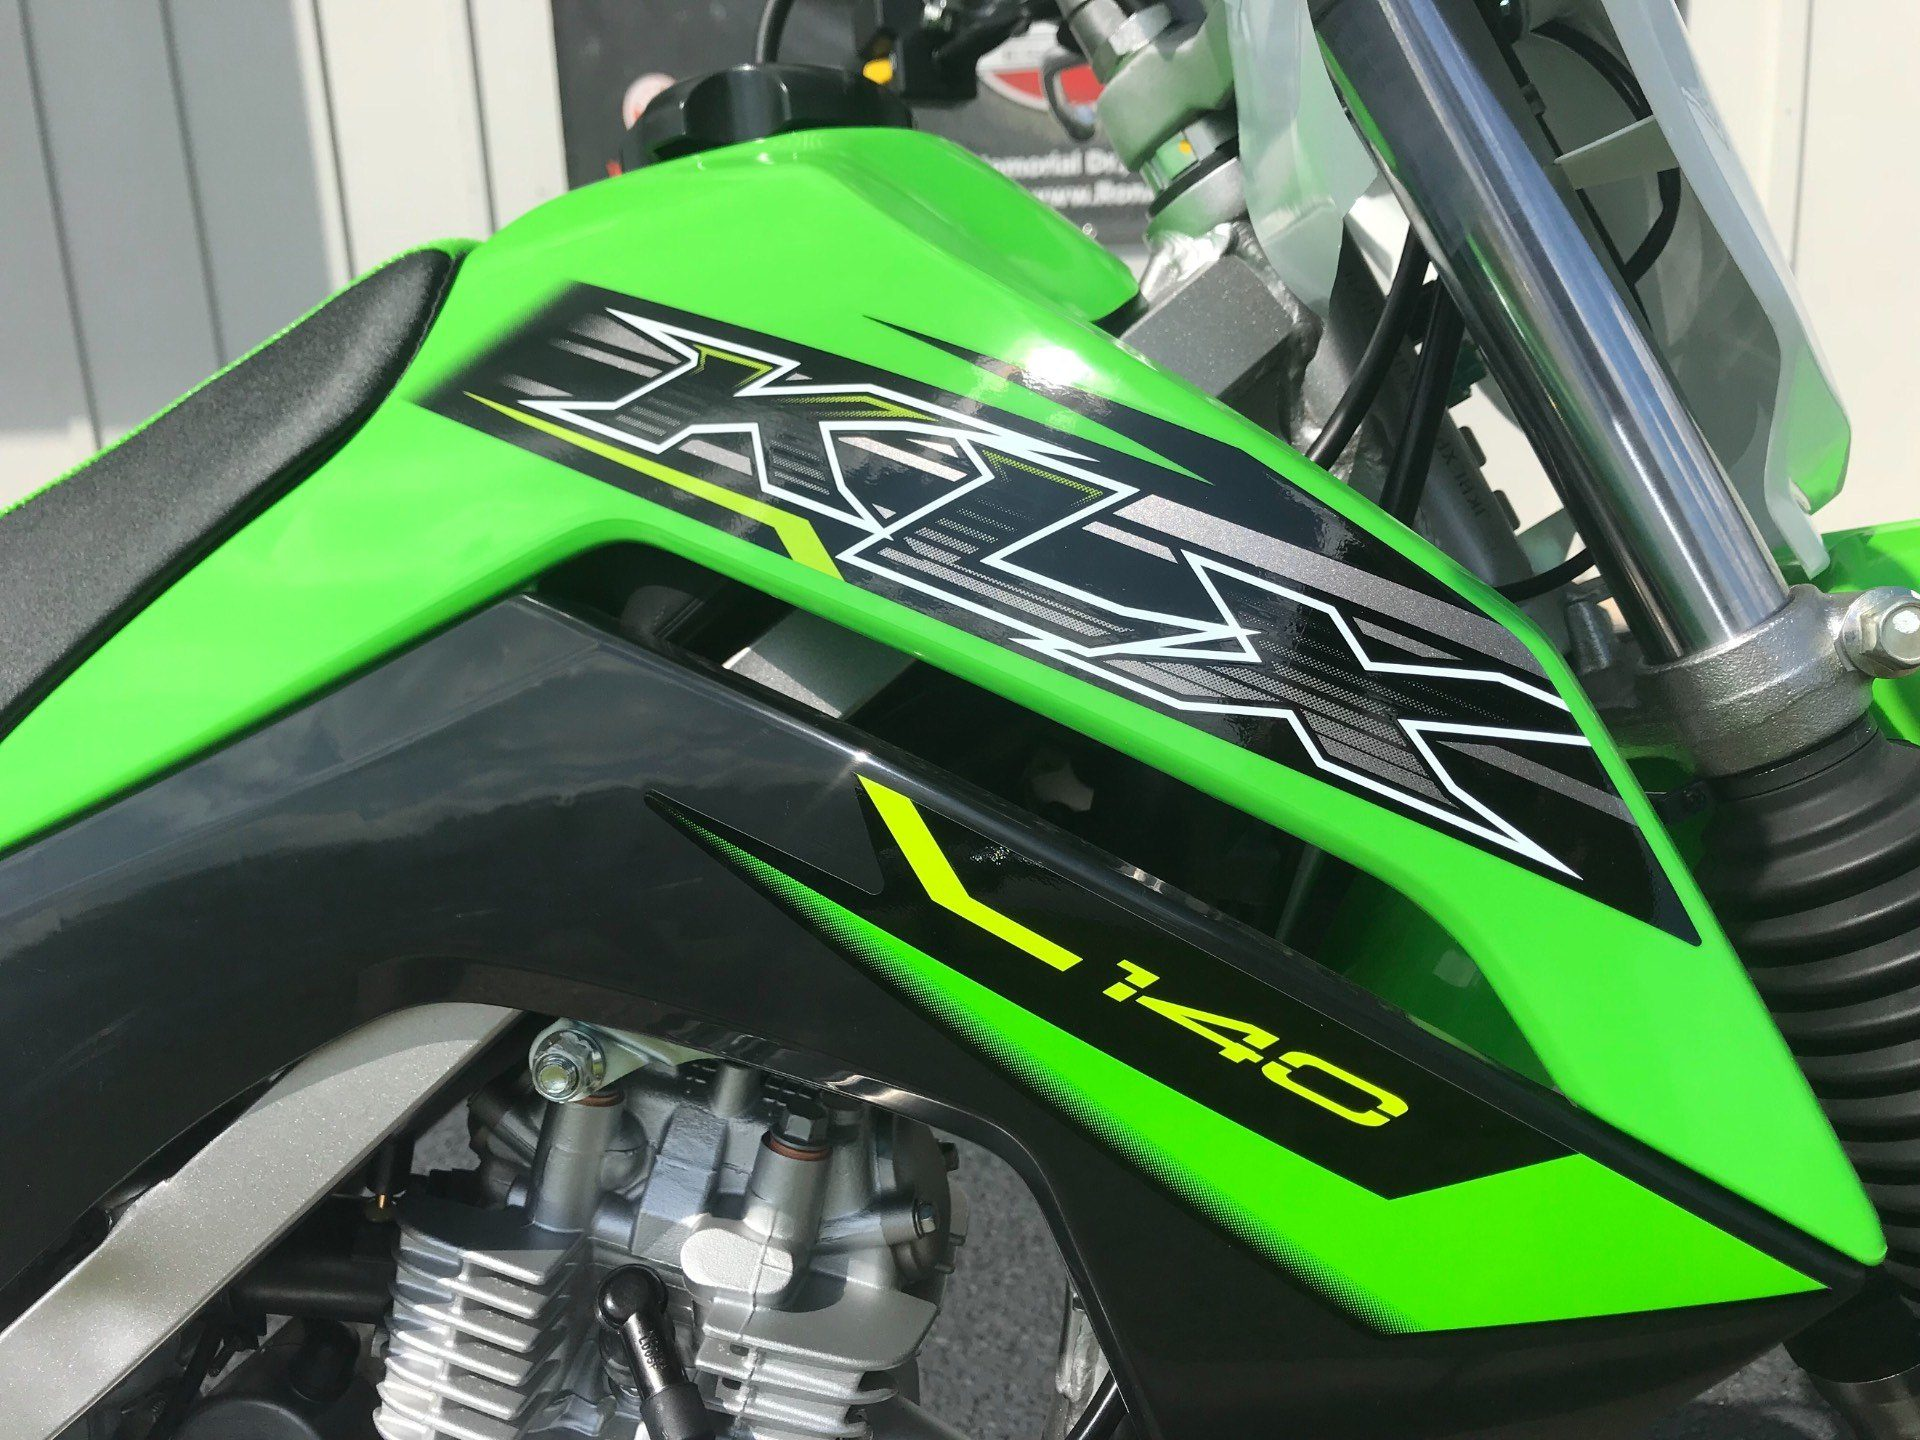 2019 Kawasaki KLX 140 in Greenville, North Carolina - Photo 18